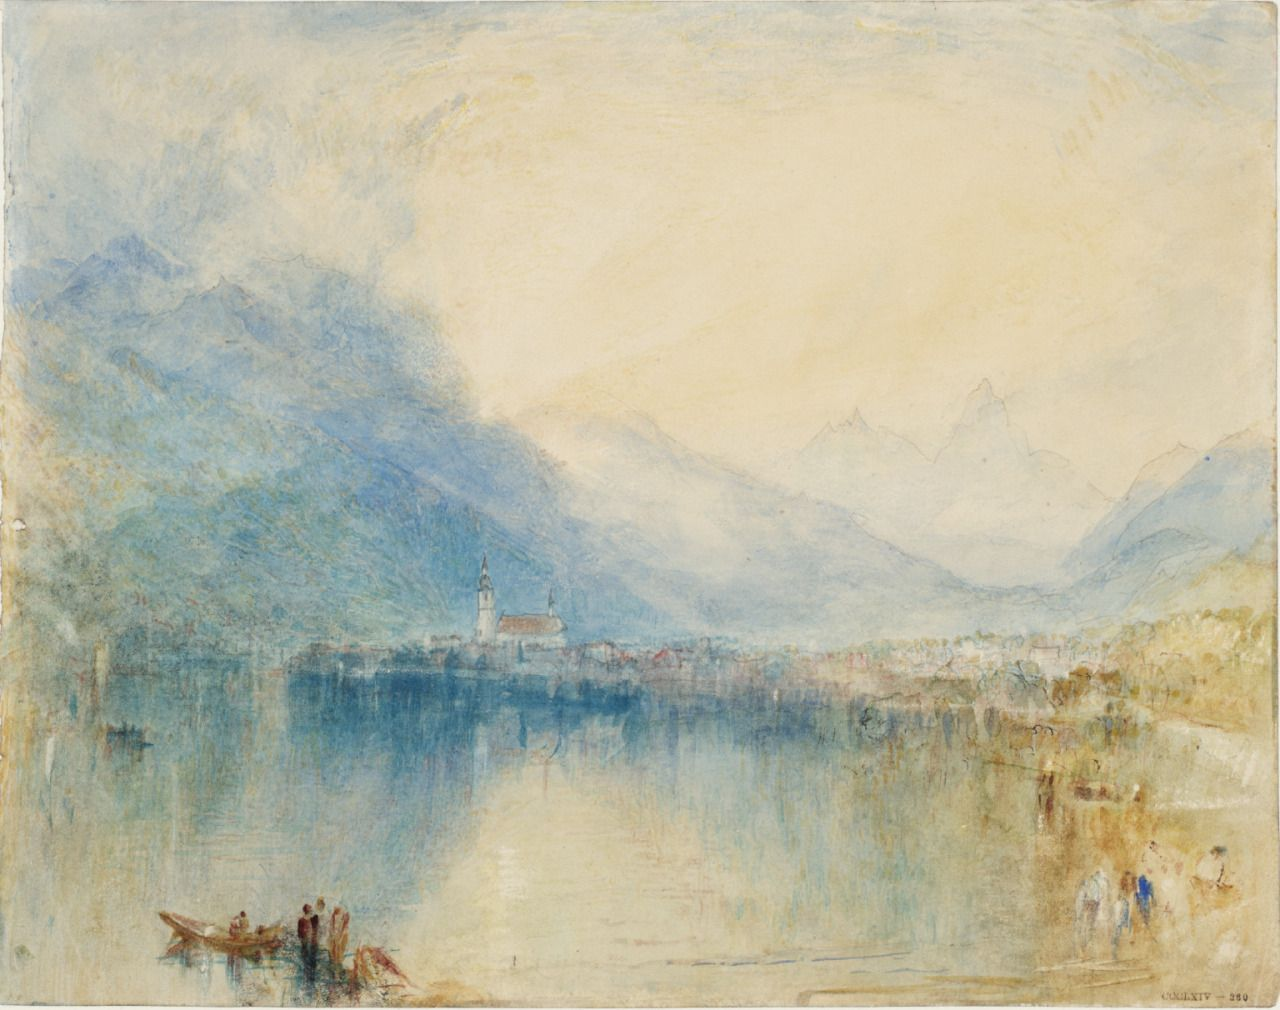 Epingle Sur Joseph Mallord William Turner 1775 1851